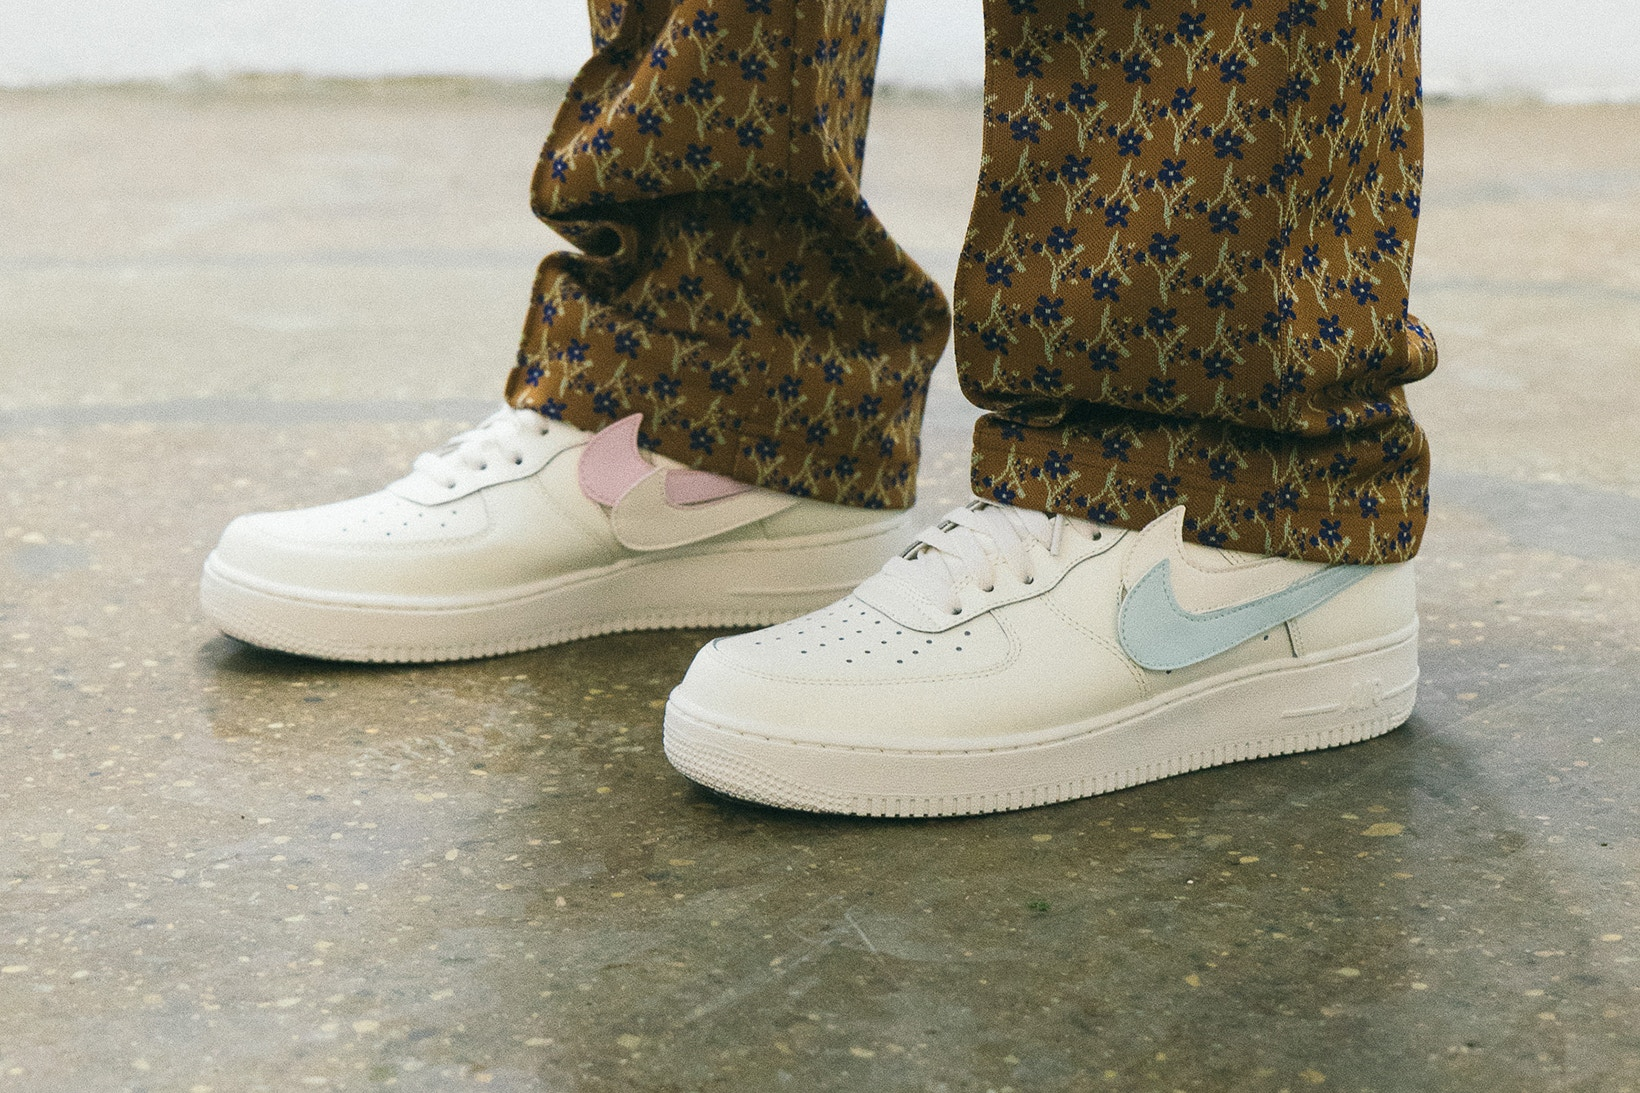 Nike's Customisable Air Force 1 Is Launching With Pretty